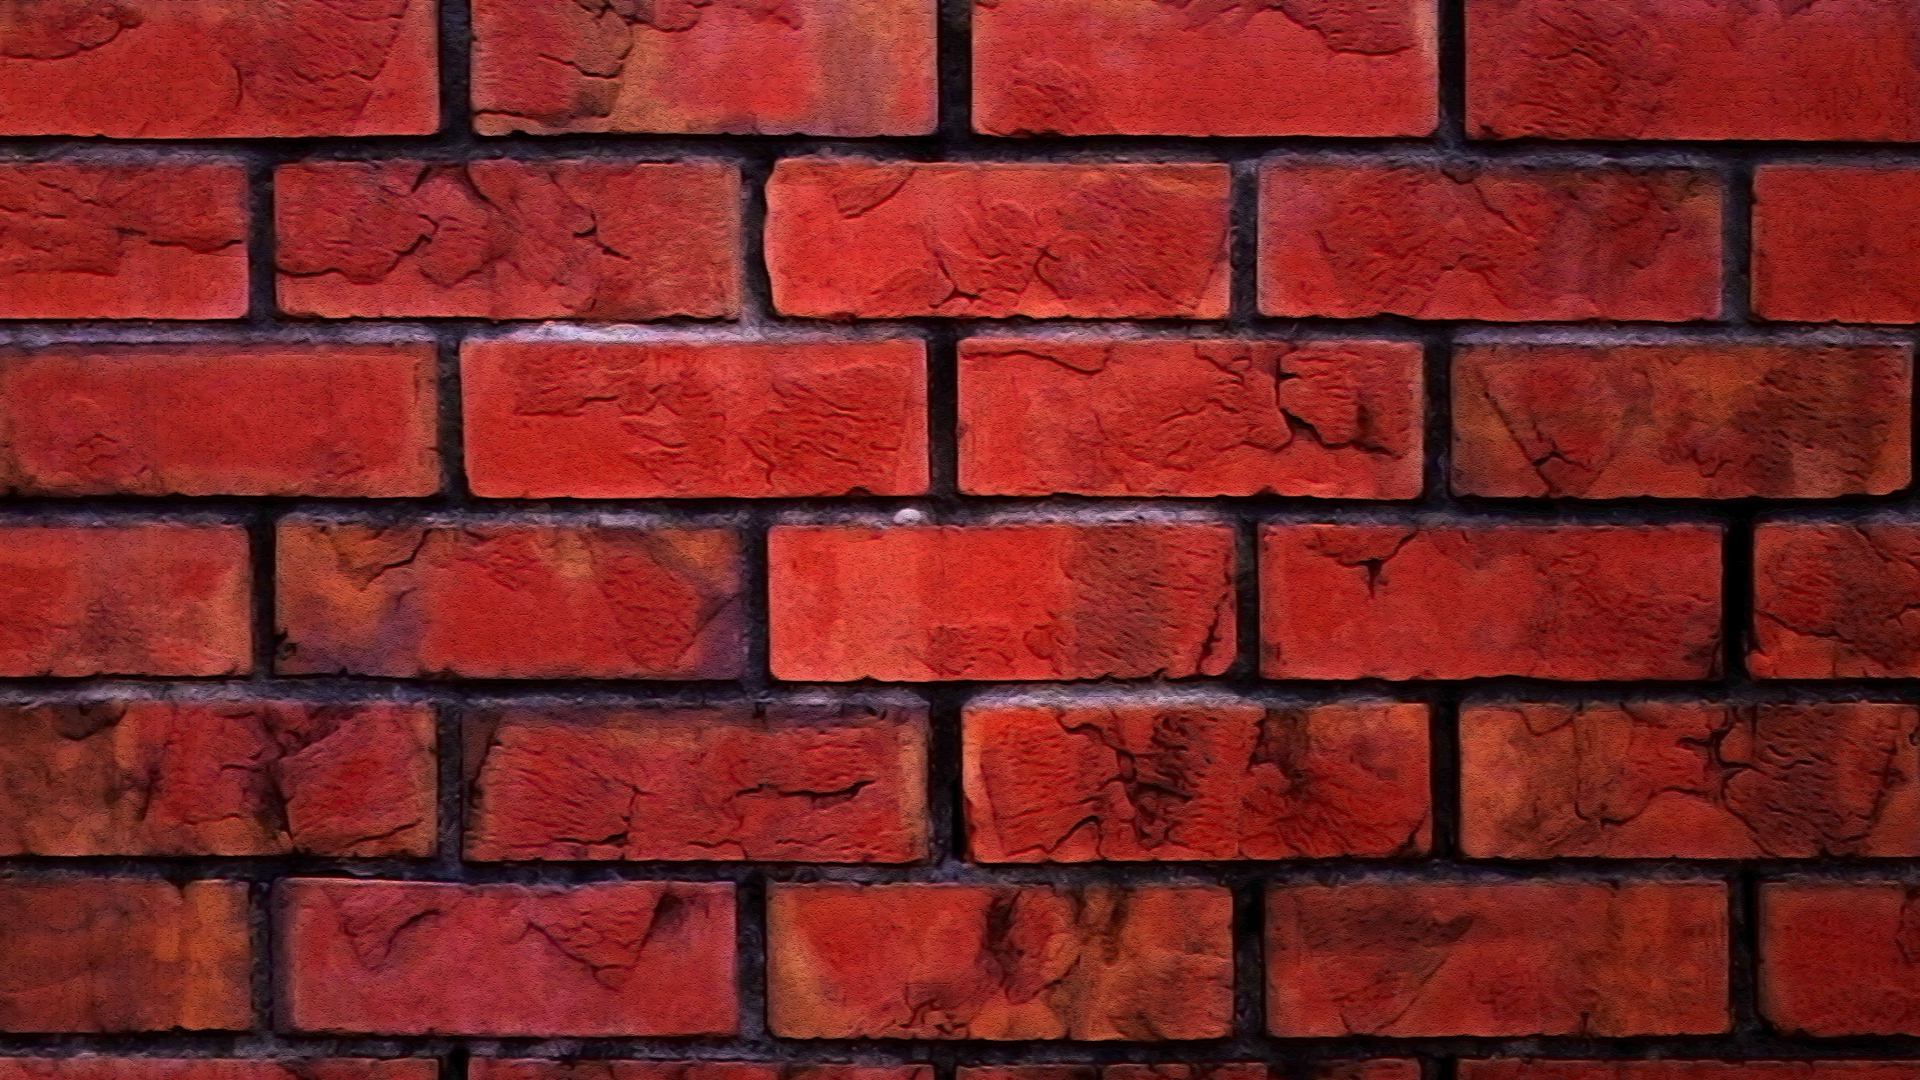 Bricks Wallpapers High Quality Download Free